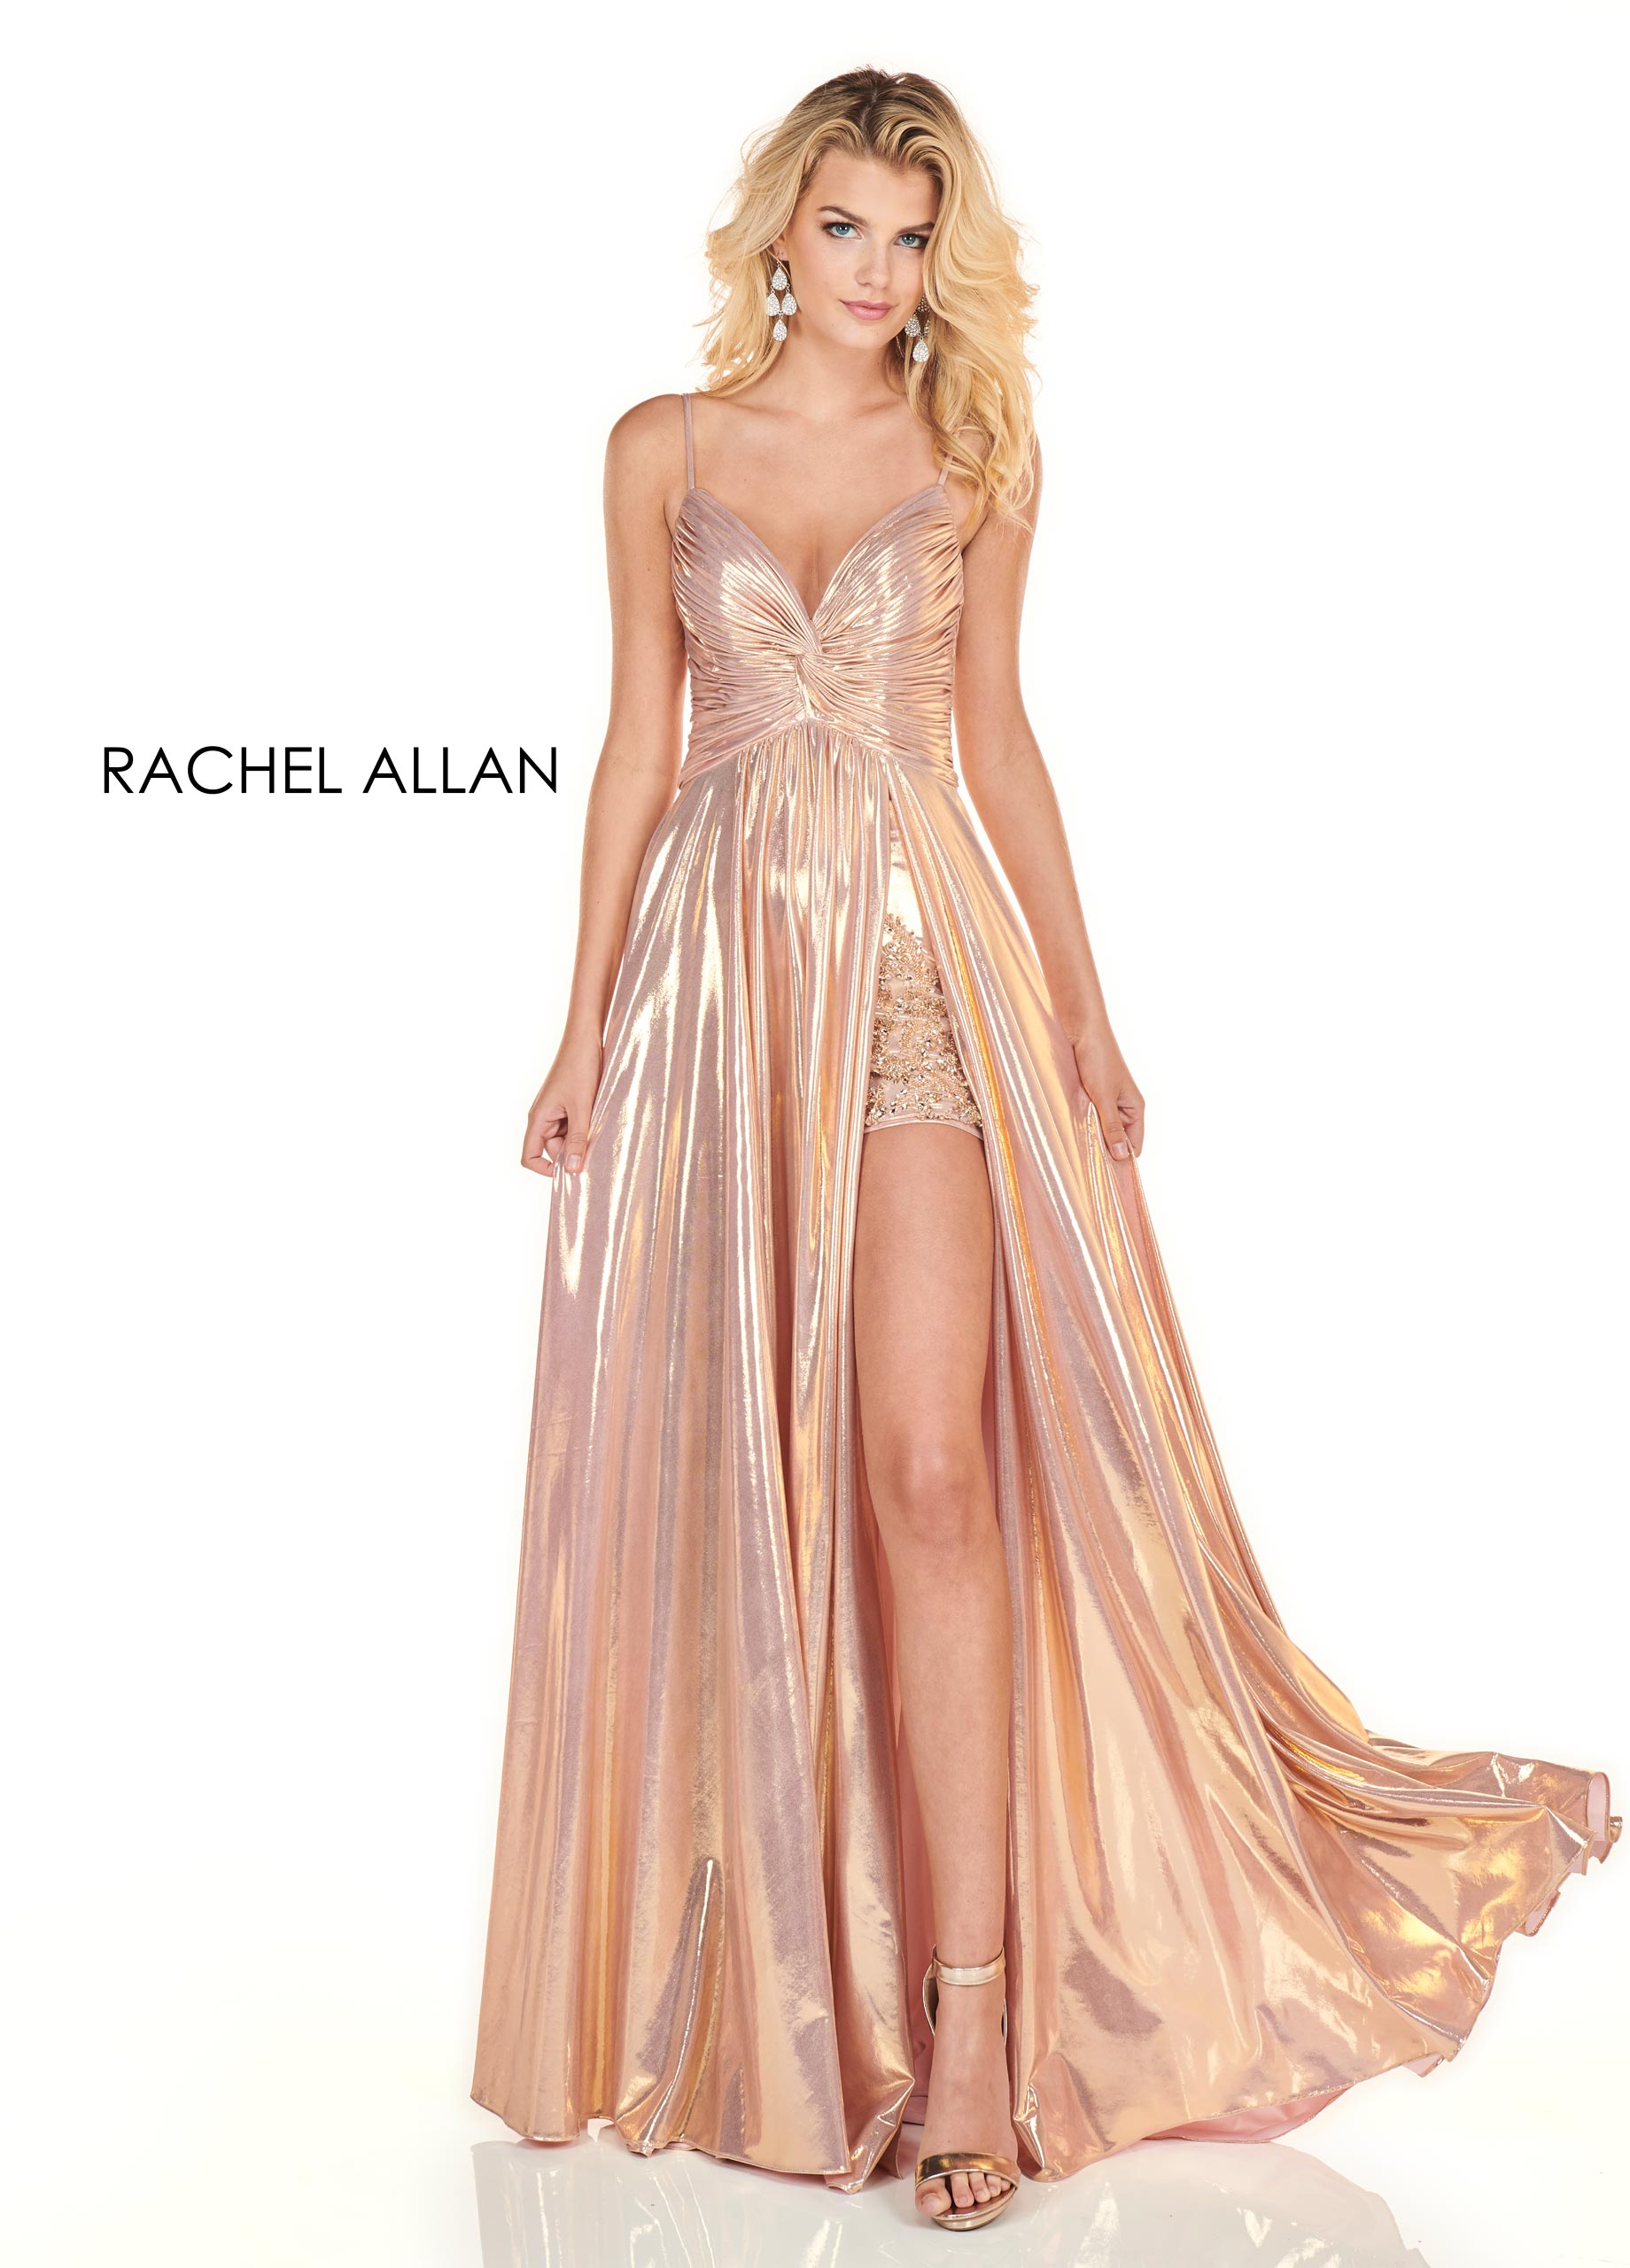 Sweetheart Shorts With Overlay Homecoming Dresses in Rose Gold Color